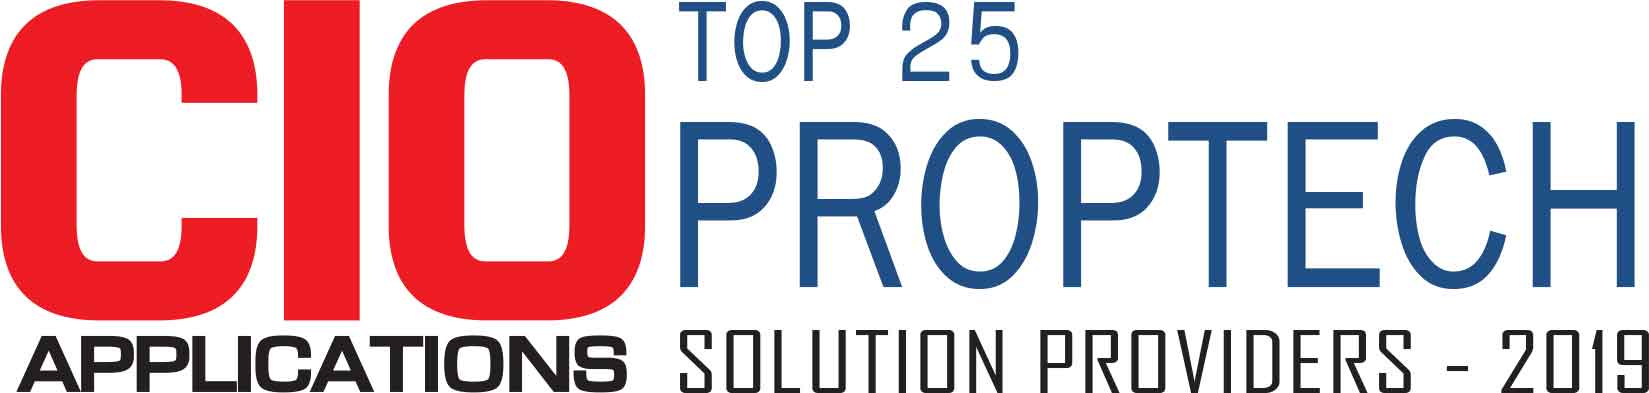 Top 25 PropTech Solution Companies - 2019